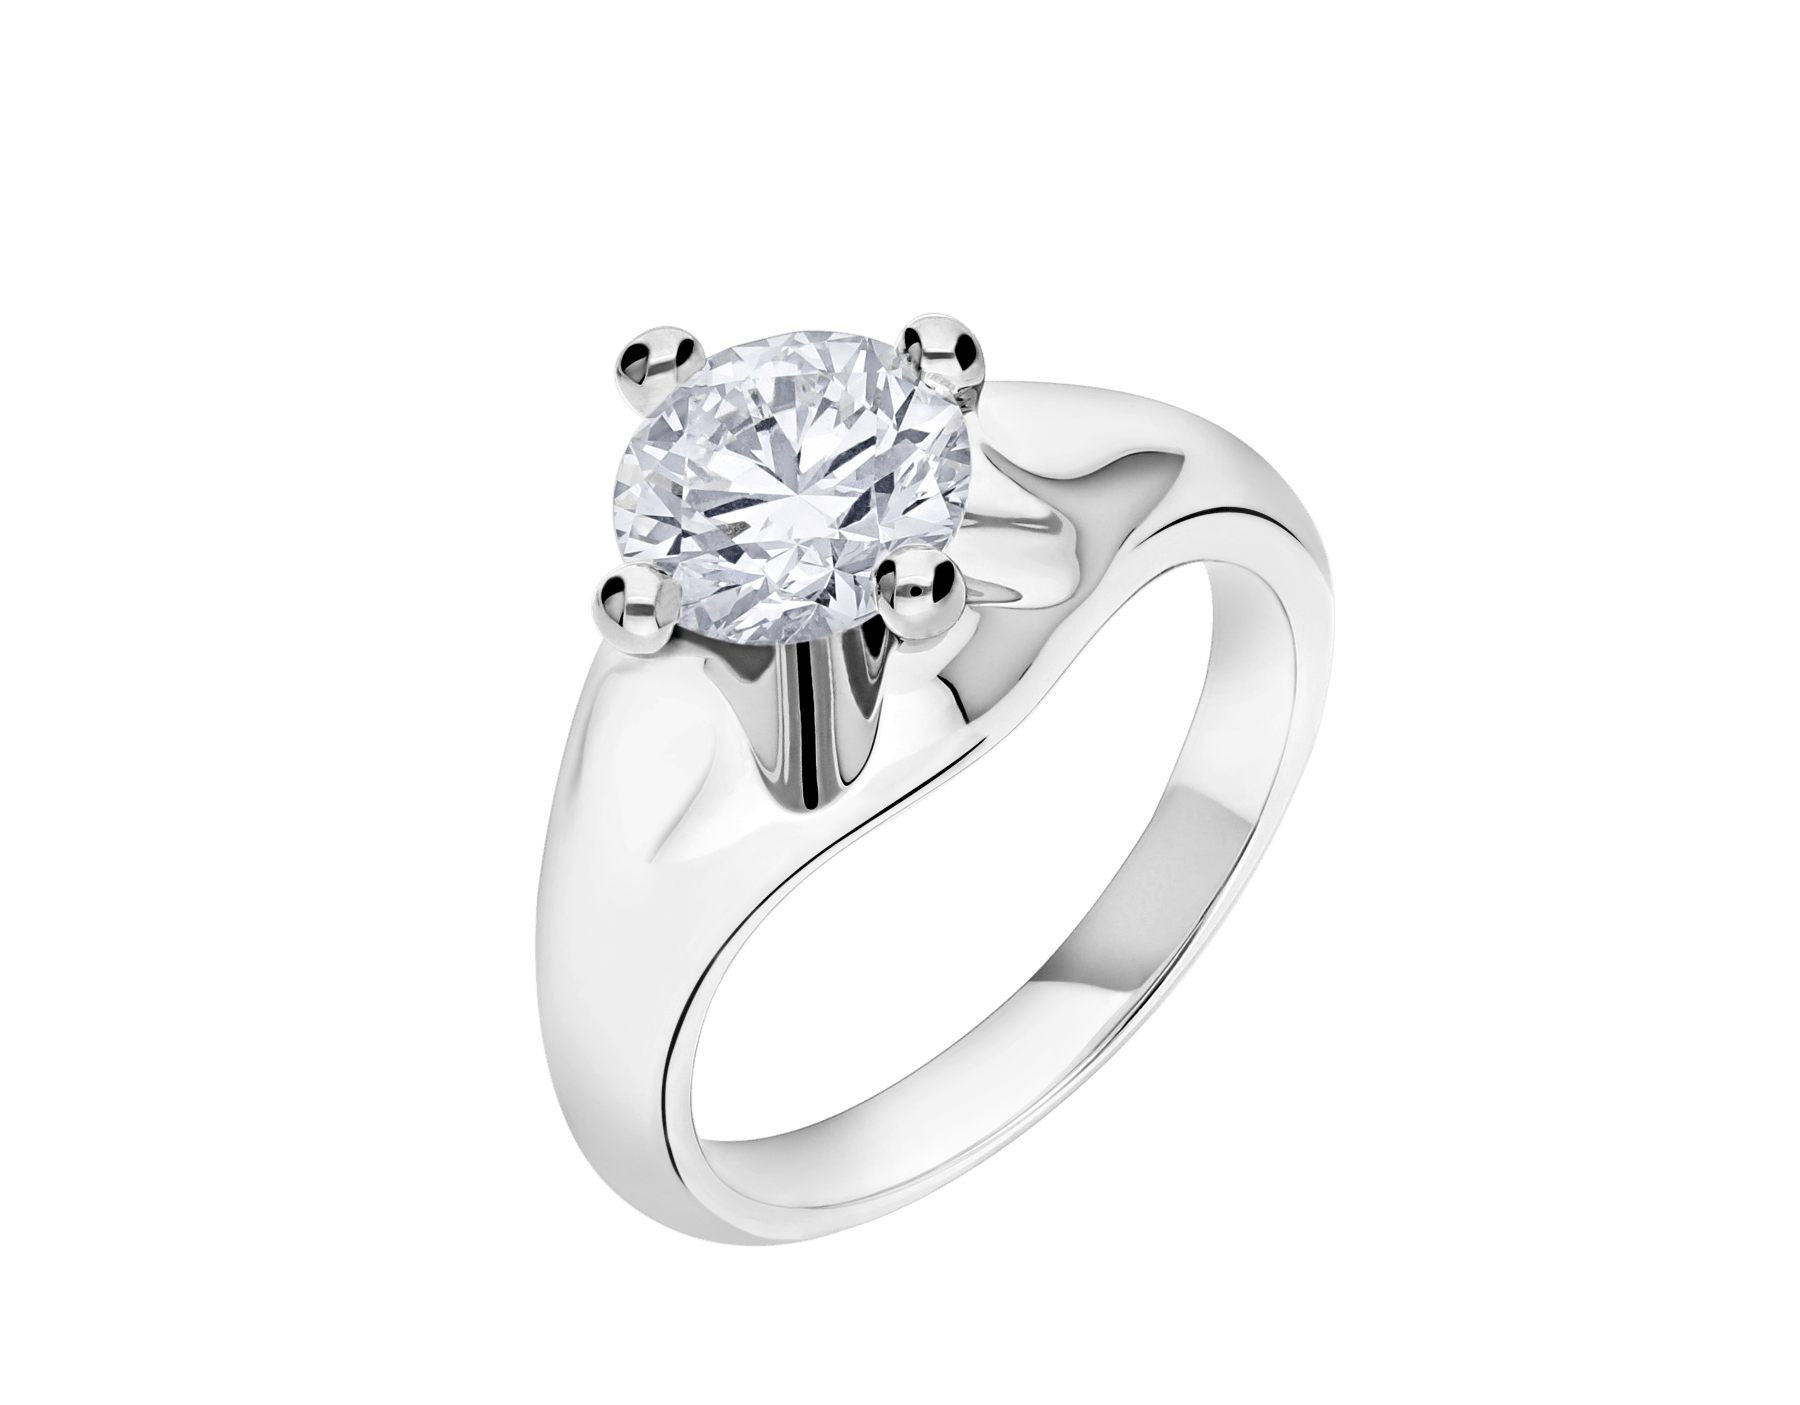 Corona platinum solitaire ring set with a round brilliant cut diamond 323743 image 2